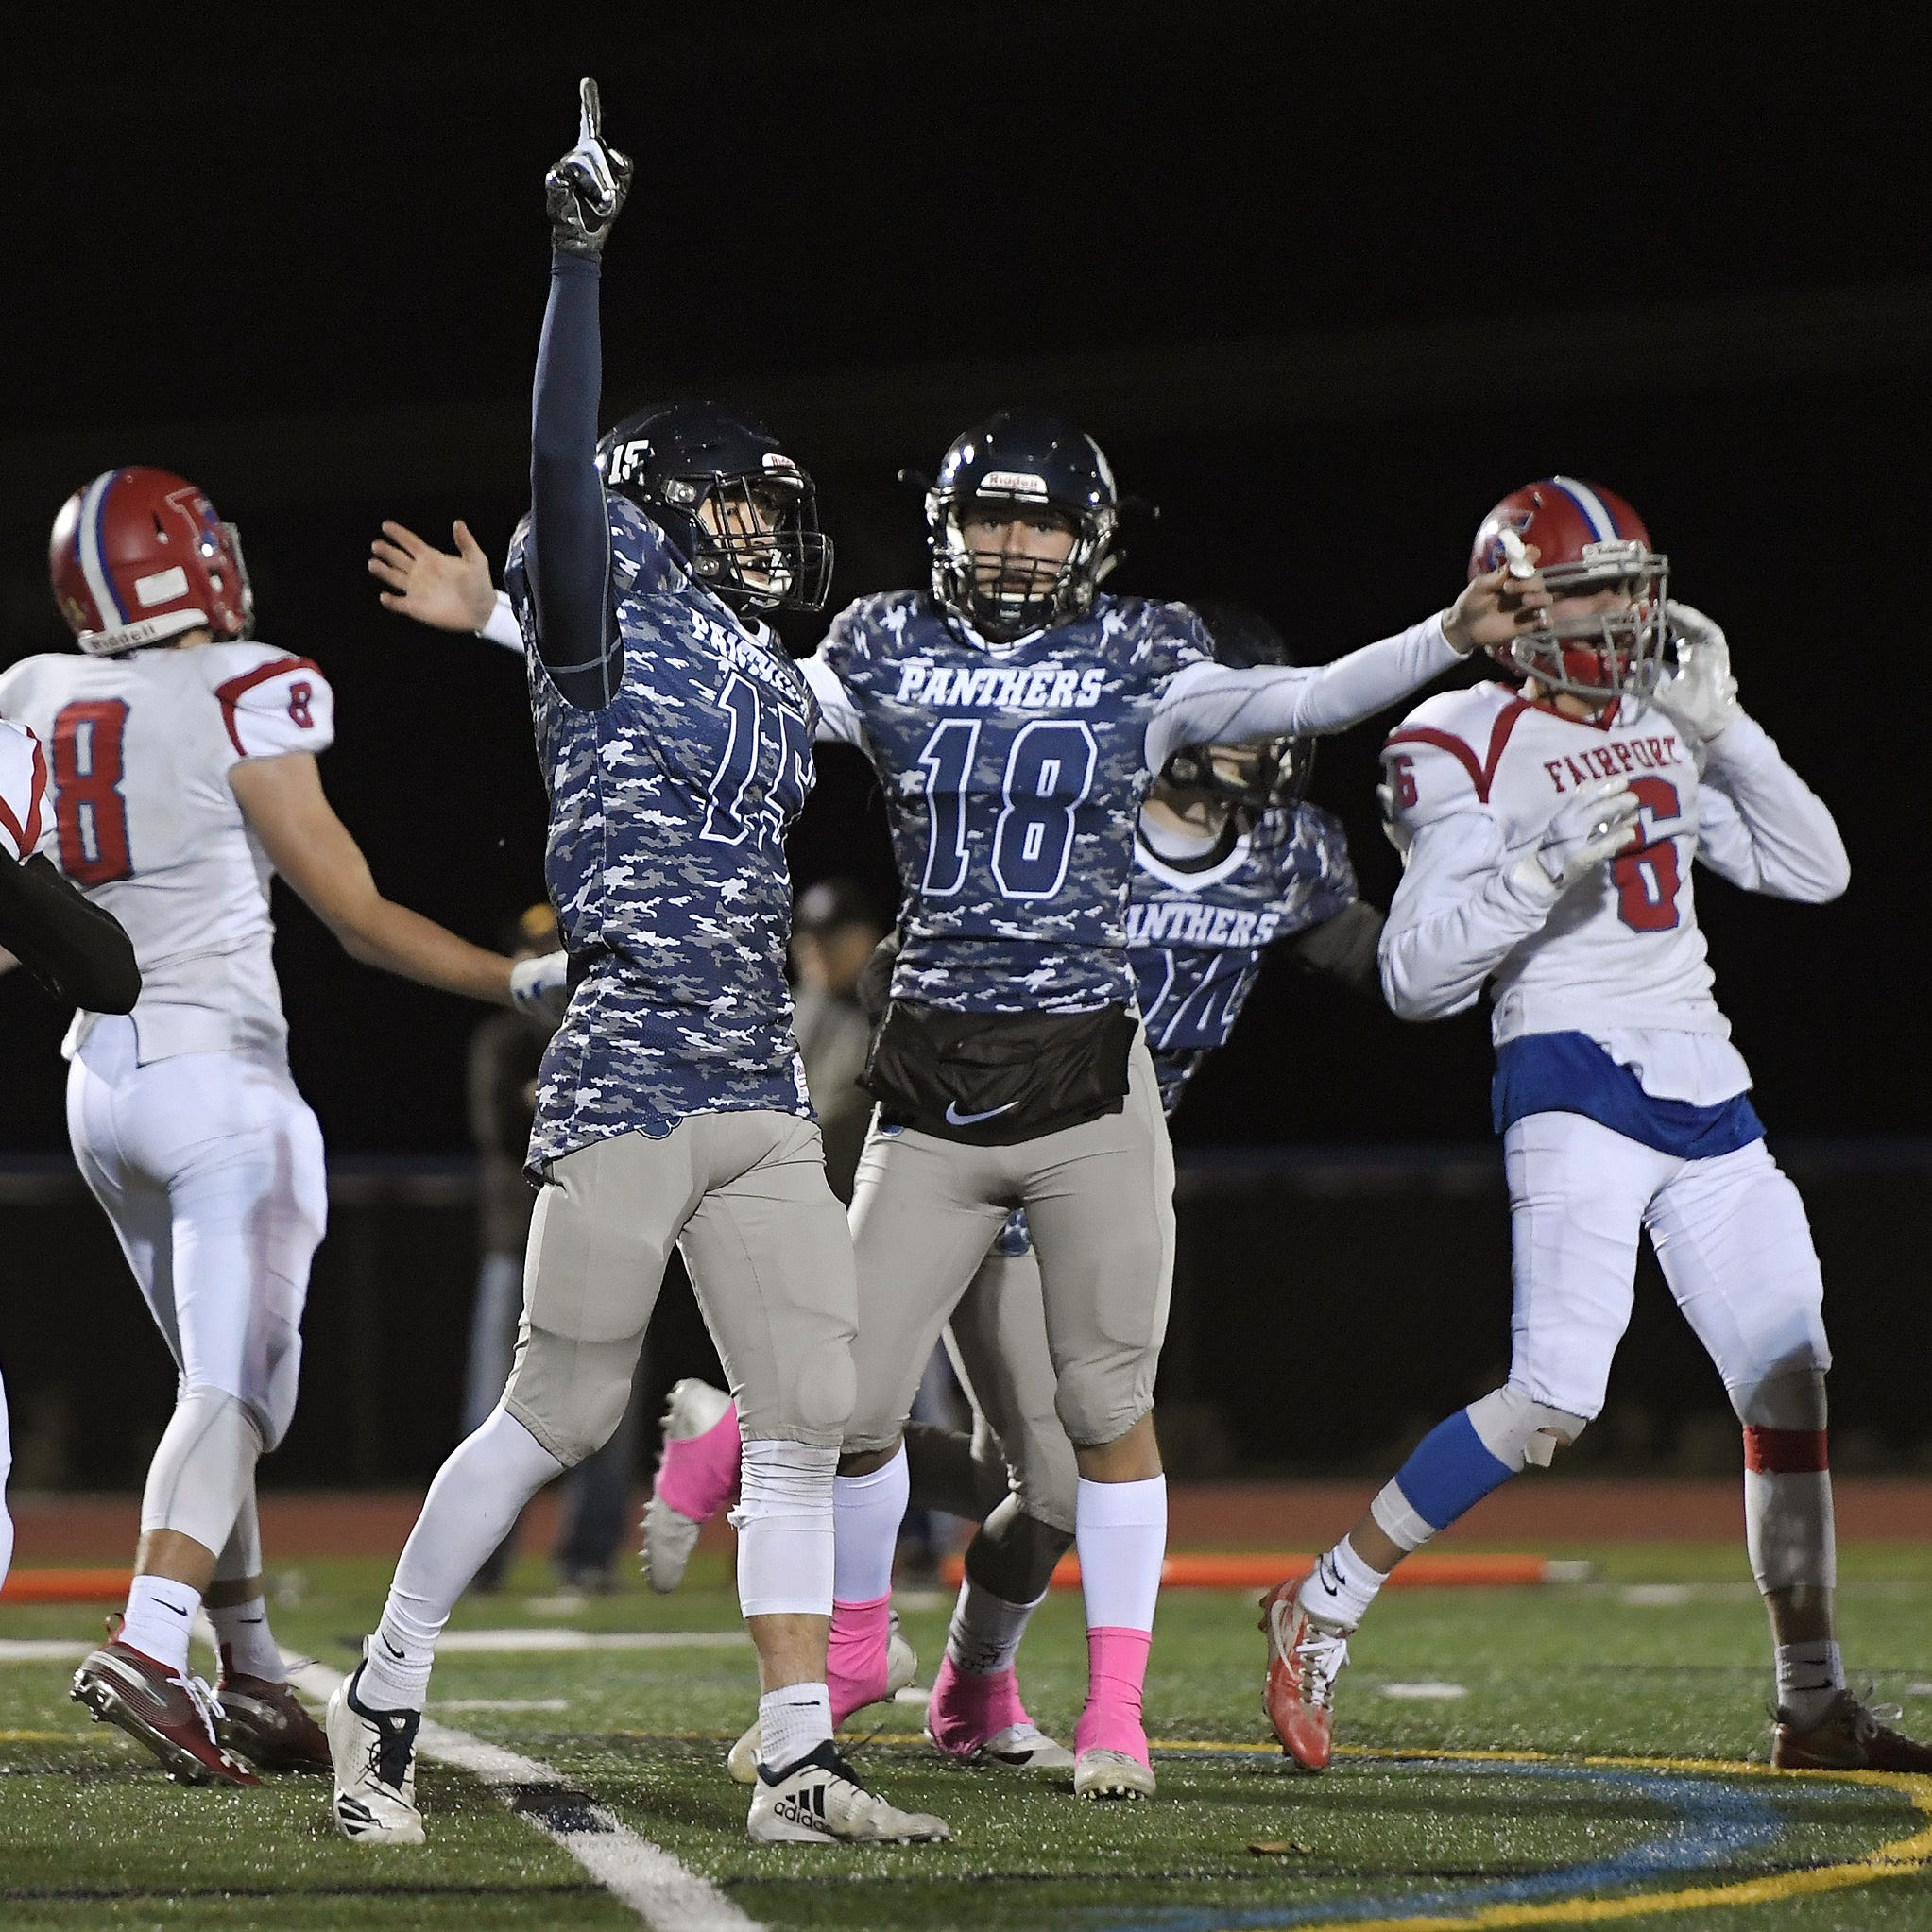 Pittsford kicker Kyle Hennessey, pointing, celebrates his game-winning extra point with holder Tyler Love during after Pittsford defeated Fairport 28-27 in overtime Saturday night to advance to the semifinals against Aquinas.